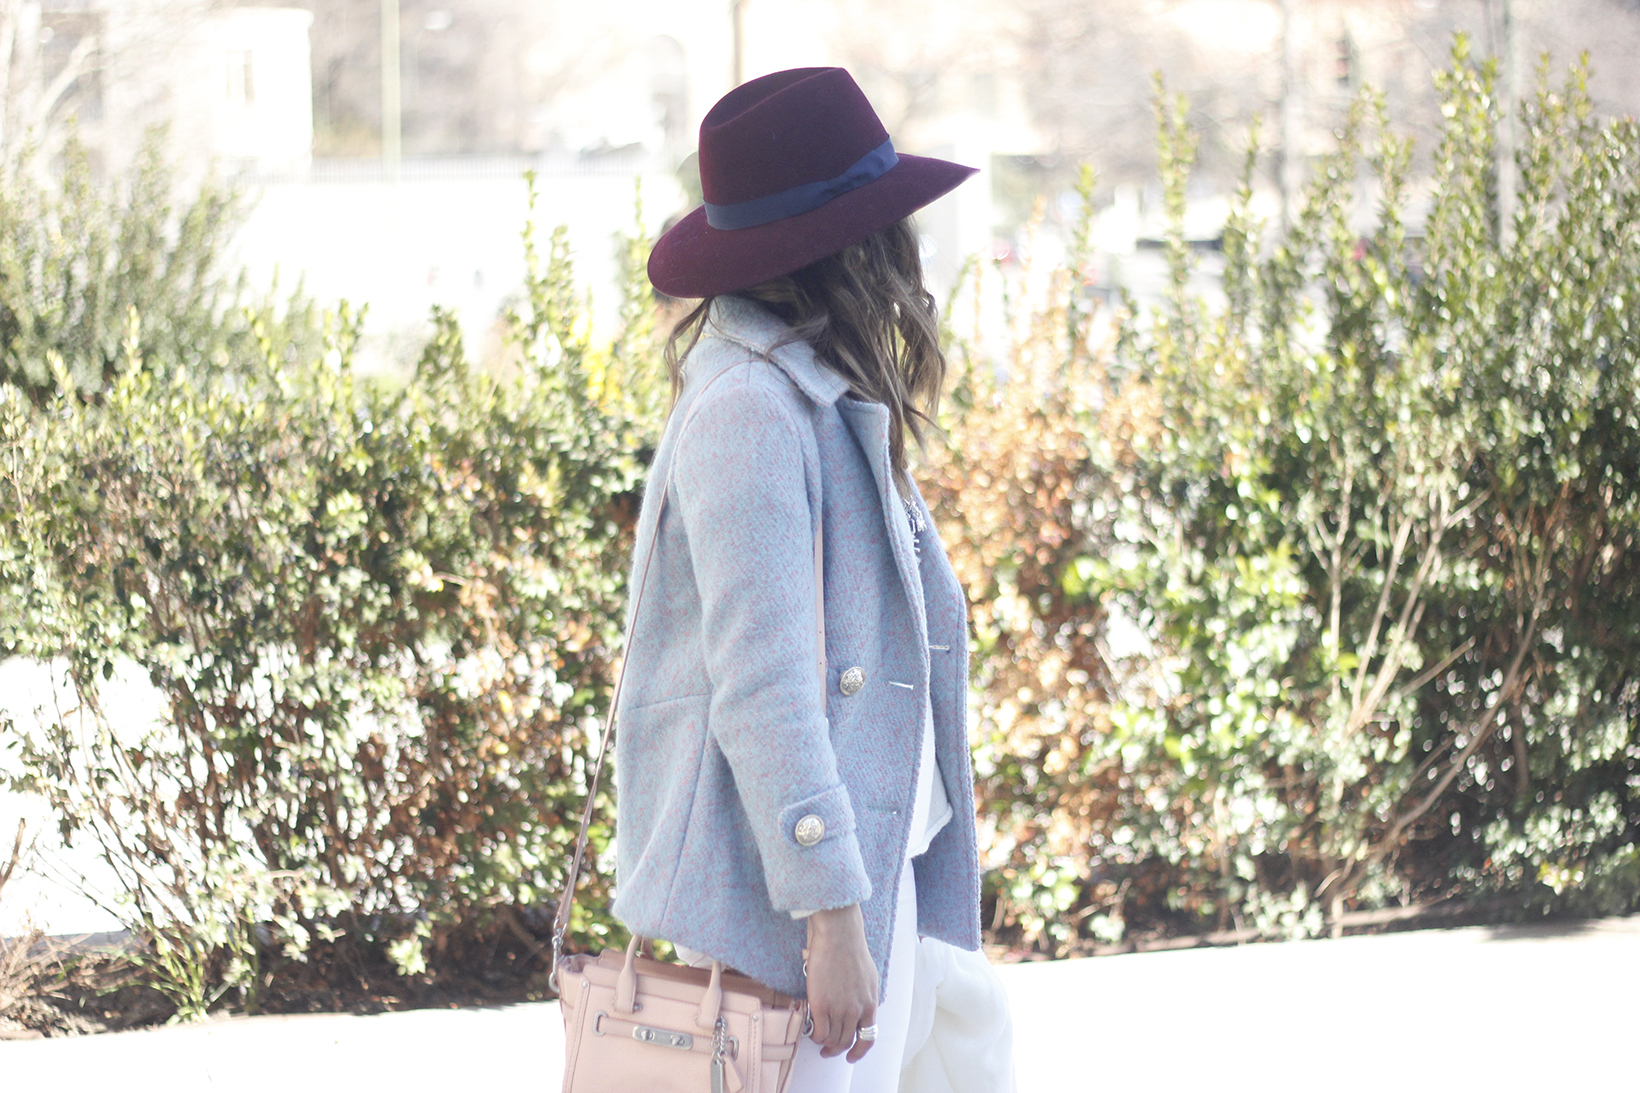 Blue Coat White outfit burgundy hat pink bag coach accessories style08